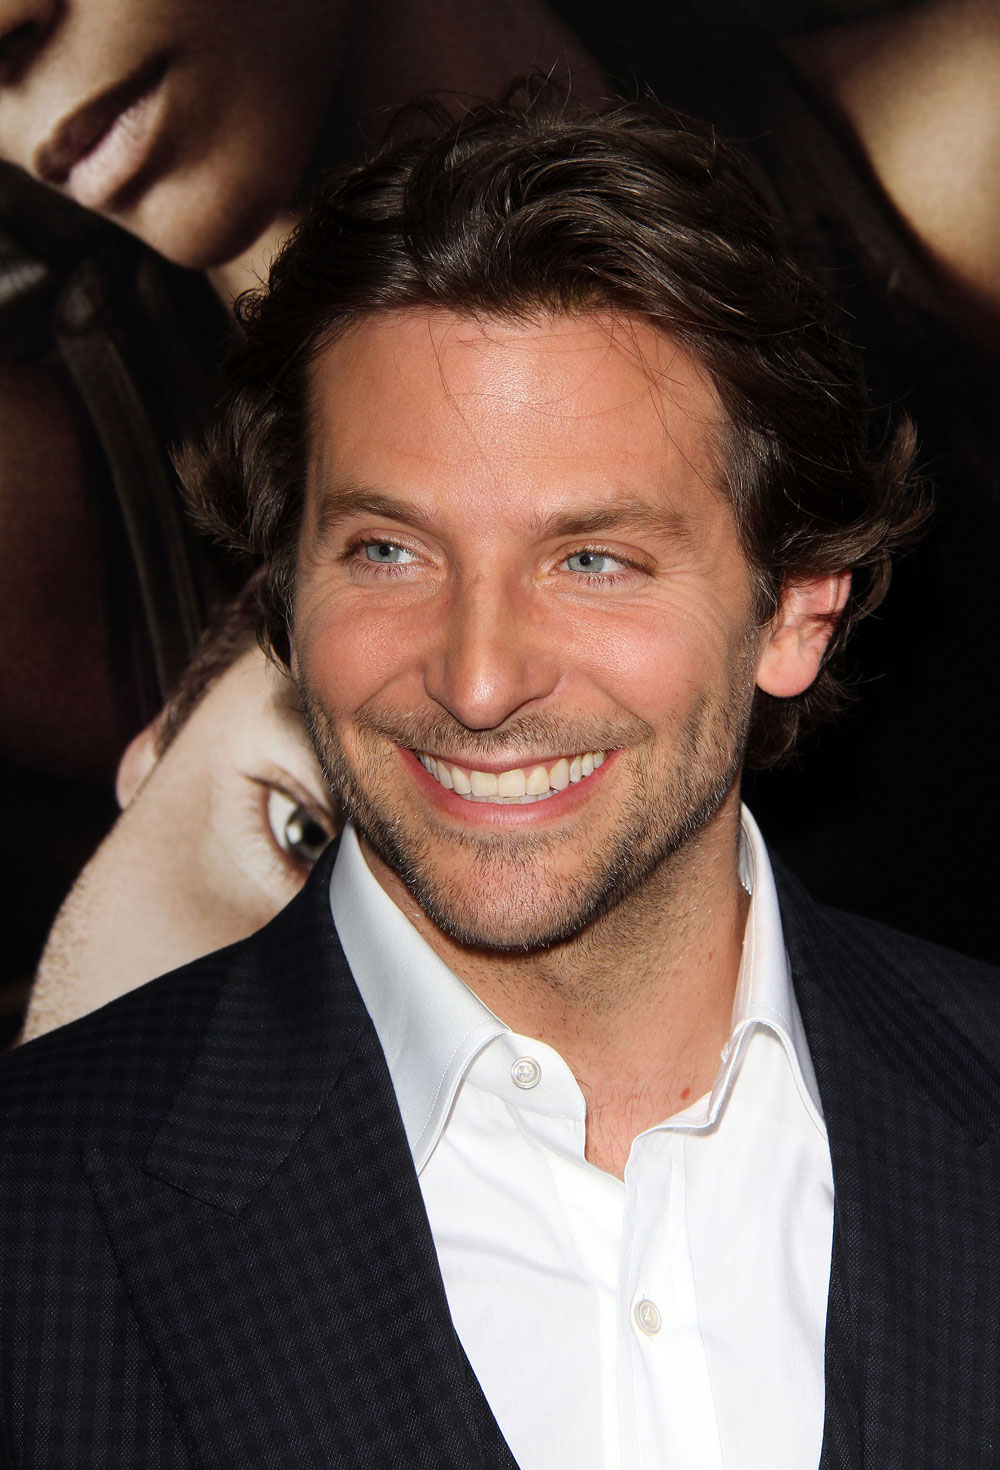 bradley cooper moviesbradley cooper irina shayk, bradley cooper movies, bradley cooper фильмы, bradley cooper height, bradley cooper vk, bradley cooper 2017, bradley cooper net worth, bradley cooper gif, bradley cooper limitless, bradley cooper haircut, bradley cooper twitter, bradley cooper filmleri, bradley cooper инстаграм, bradley cooper photoshoot, bradley cooper interview, bradley cooper jennifer lawrence, bradley cooper chef, bradley cooper house, bradley cooper tumblr, bradley cooper wiki